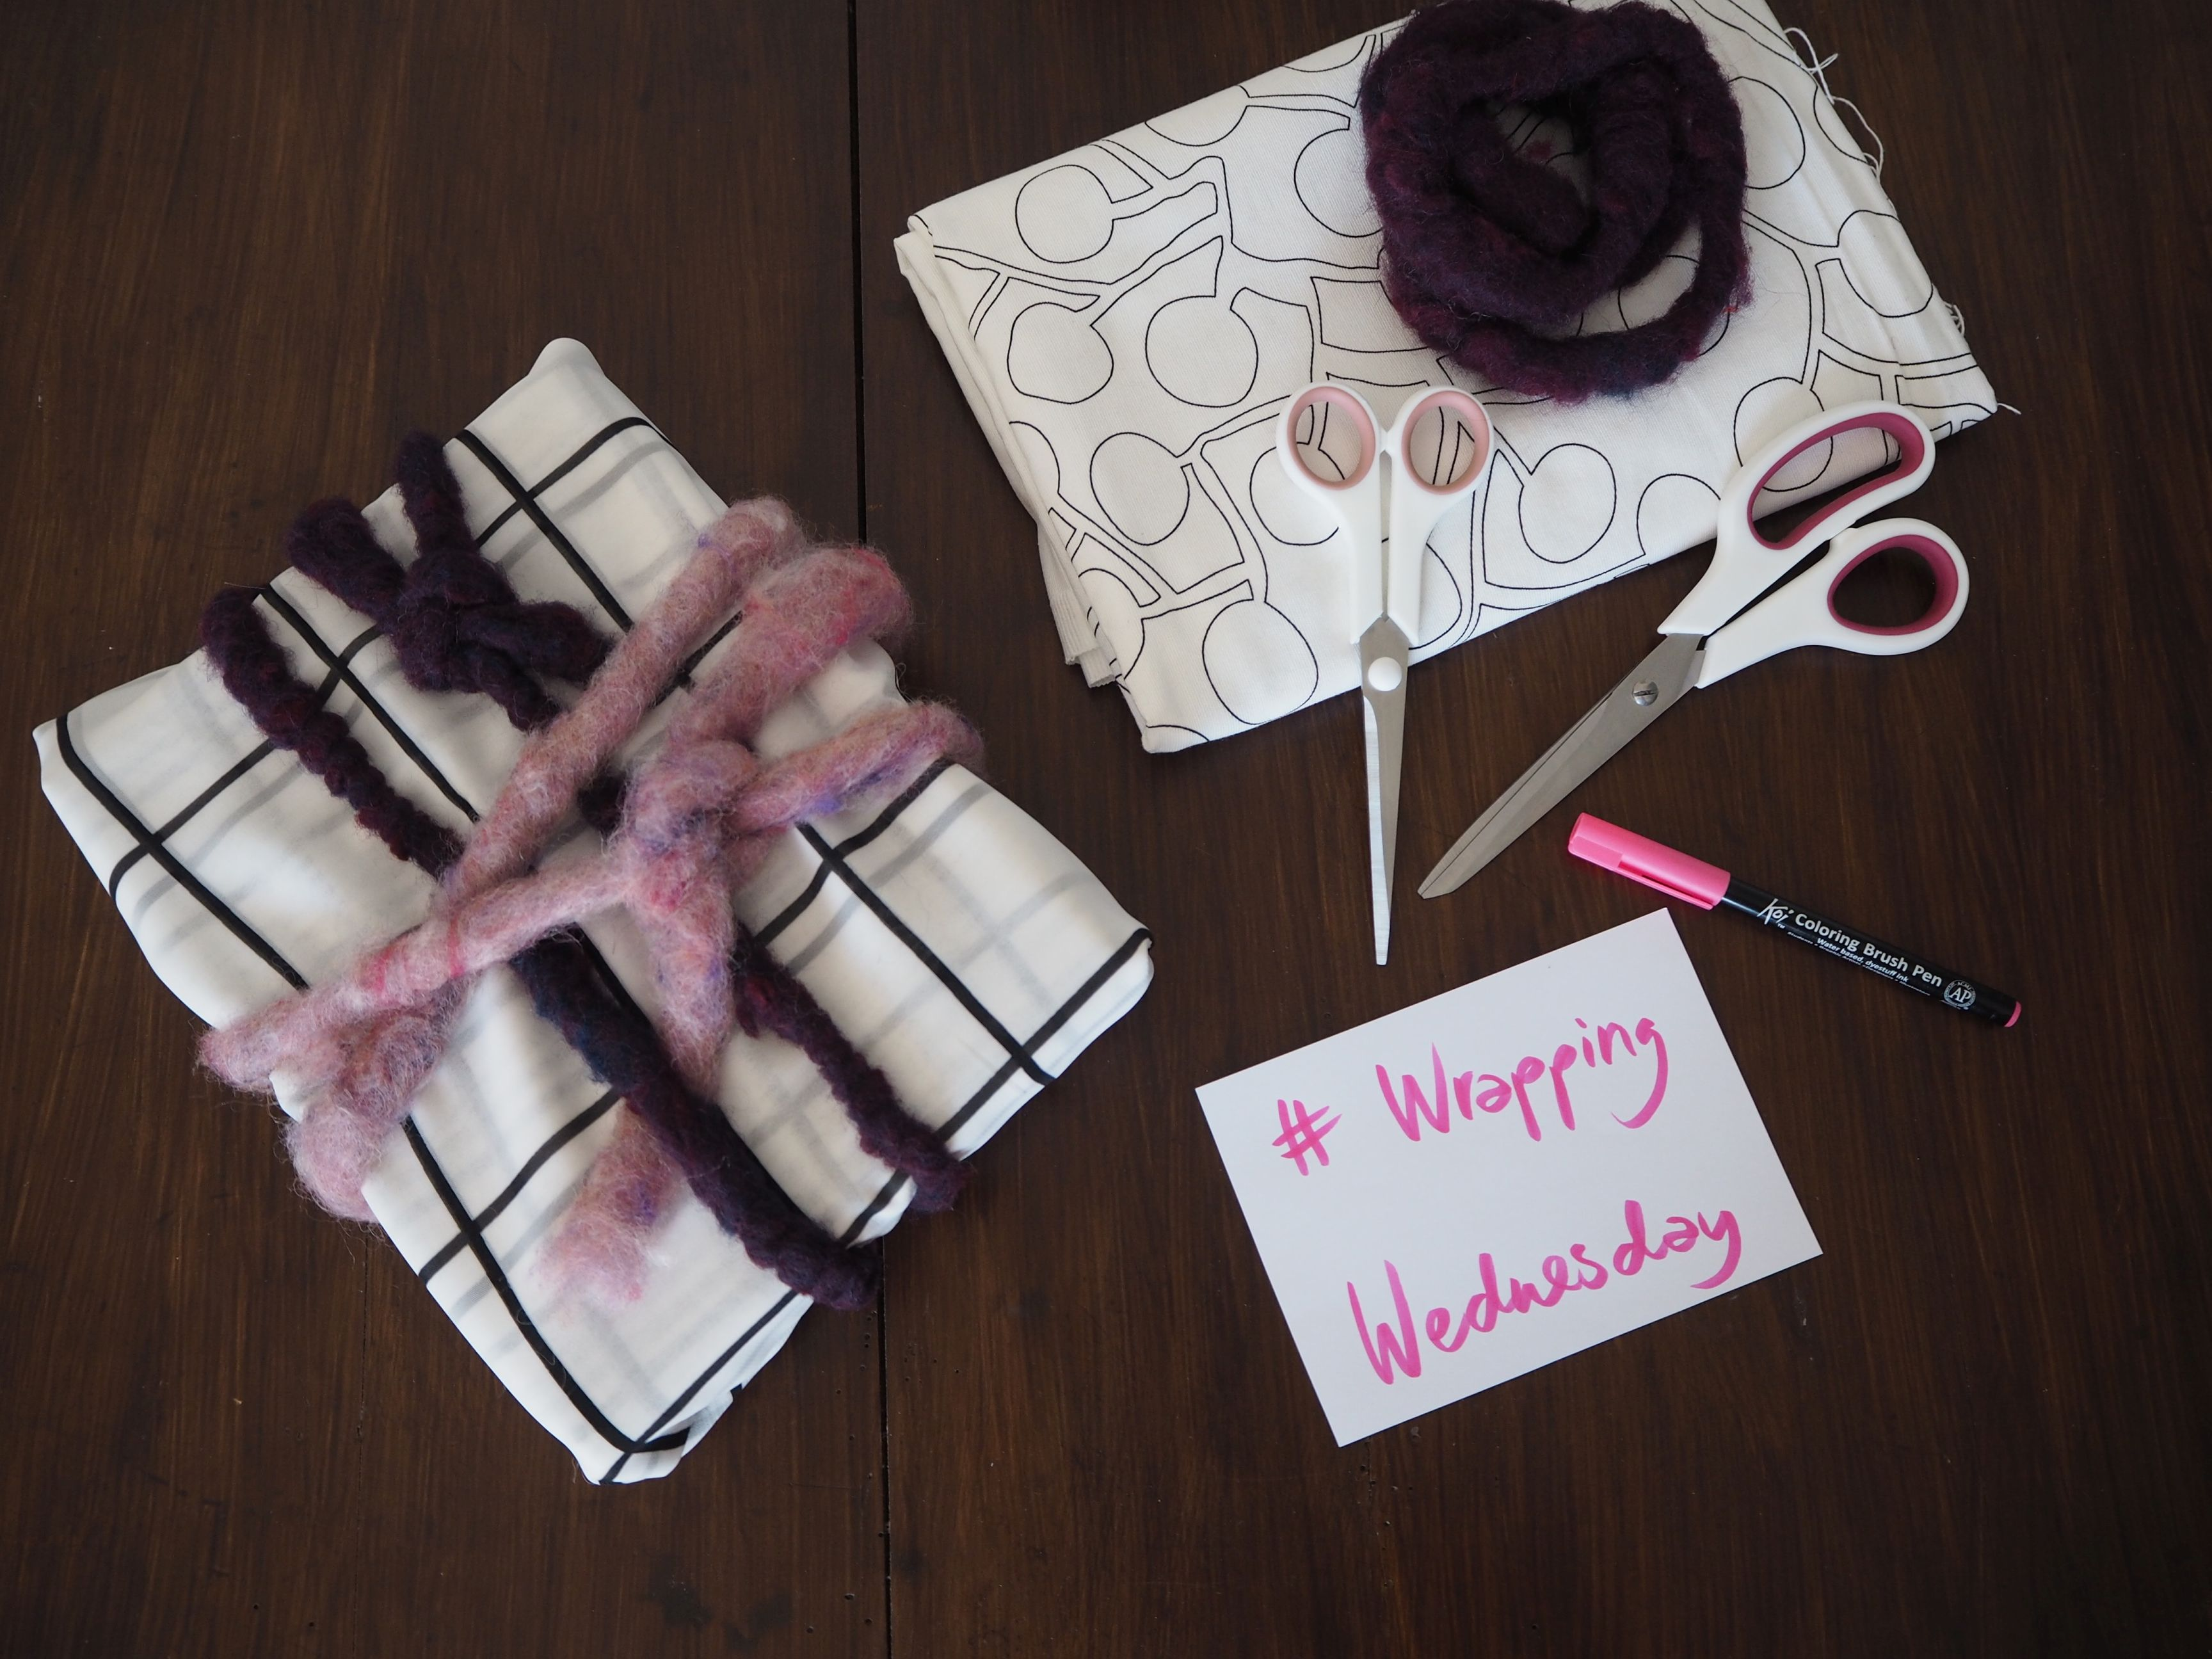 2016-08-diy-wrapping-wednesday-stoffreste-und-filz (1)